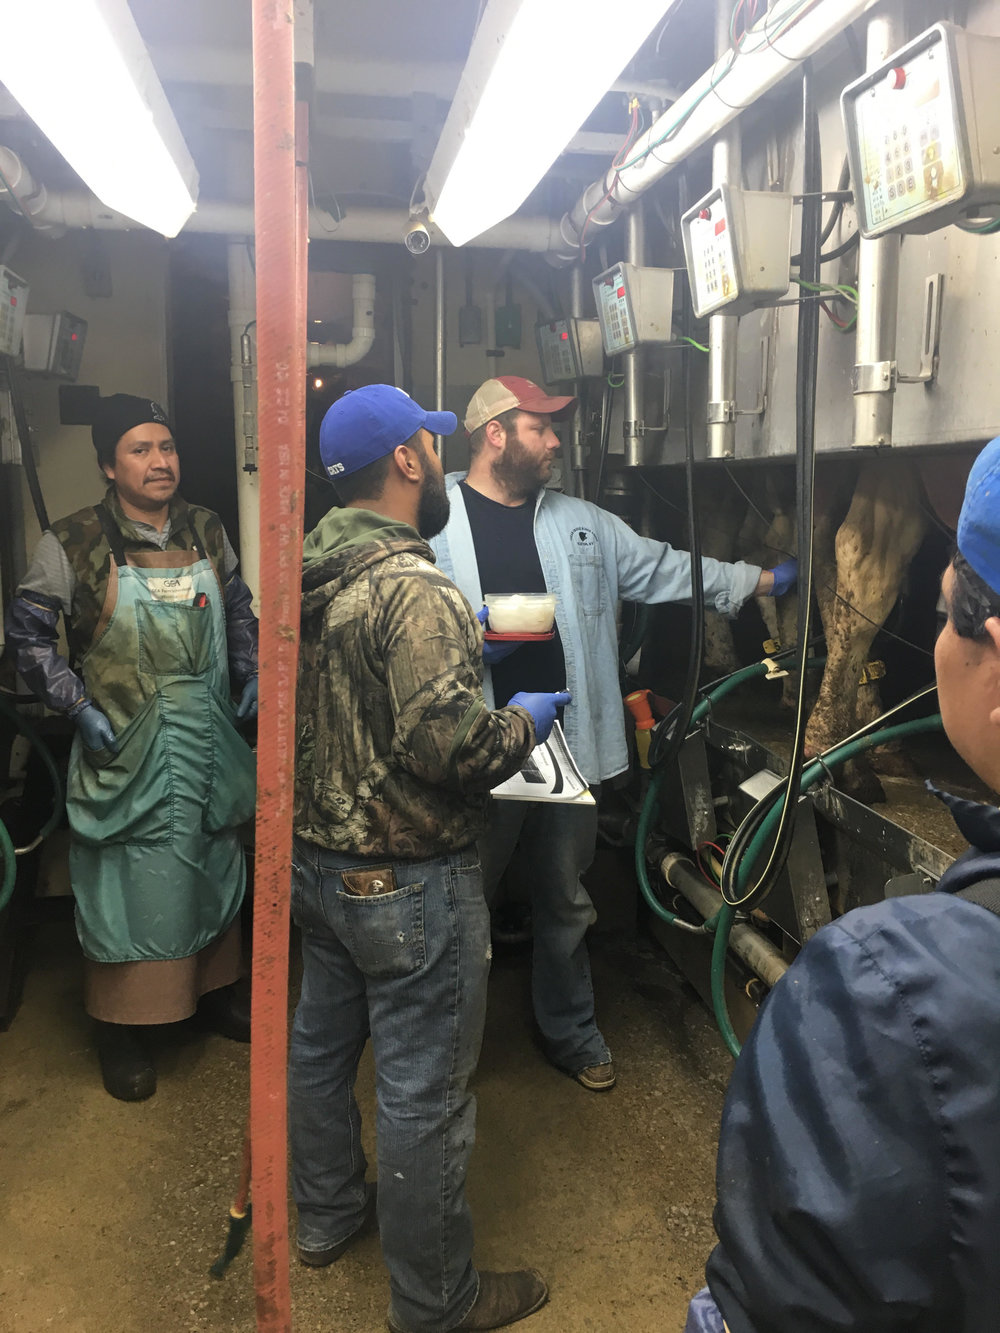 Late nights and early morning are the norm for the people involved with our lab. Dr. John and Armando are teaching hispanic workers the tricks of the trade. Armando handles interpretation for us when working with dairies needing bilingual services.